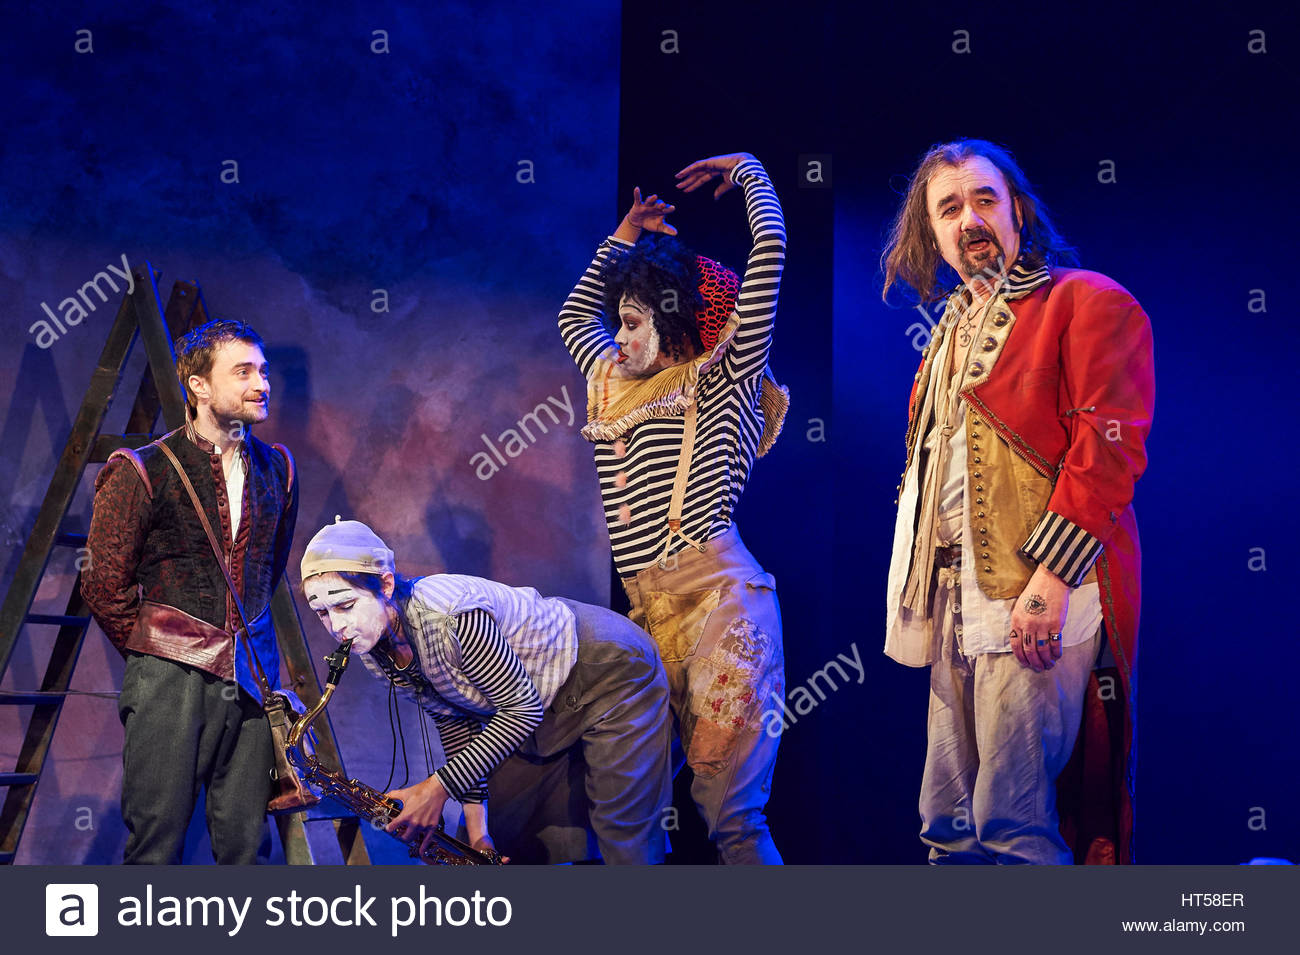 Rosencrantz and Guildenstern by Tom Stoppard, directed by David Leveaux. With Daniel Radcliffe as Rosencrantz, David - Stock Image